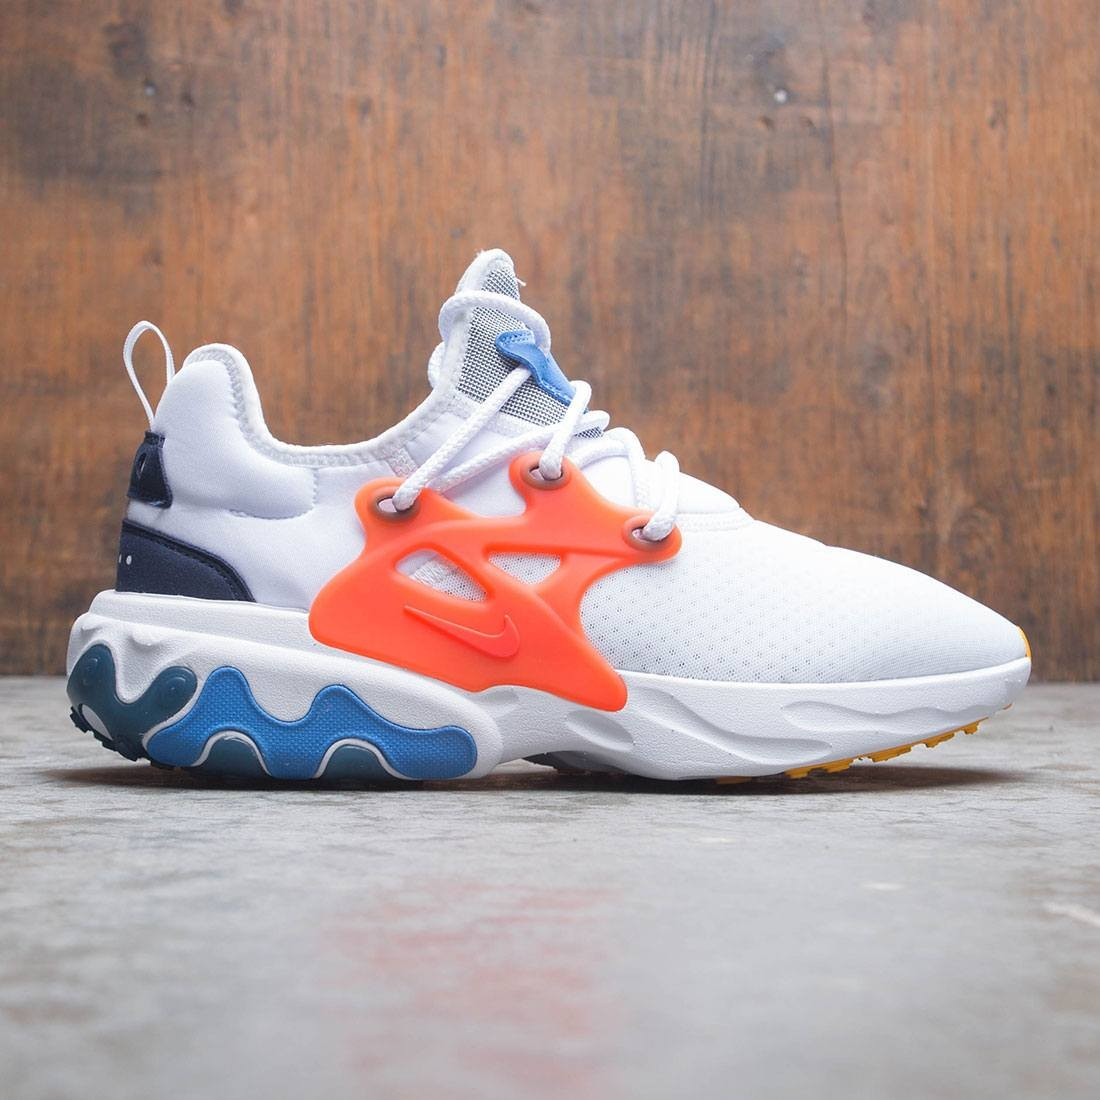 2019 Nike React Presto Rabid Panda Blue White For Sale